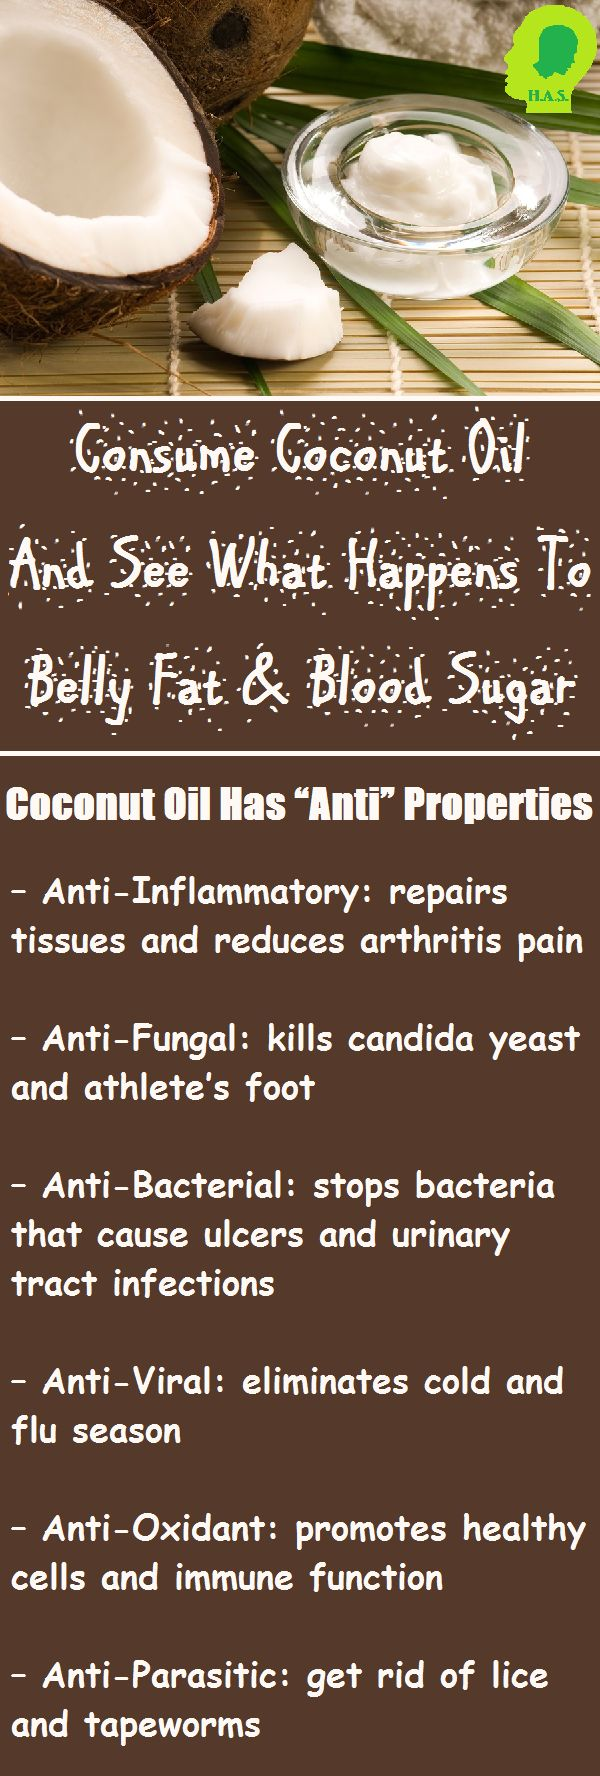 "Coconut oil is considered a ""superfood"", meaning it's a nutrient rich food that's extremely beneficial to our health."